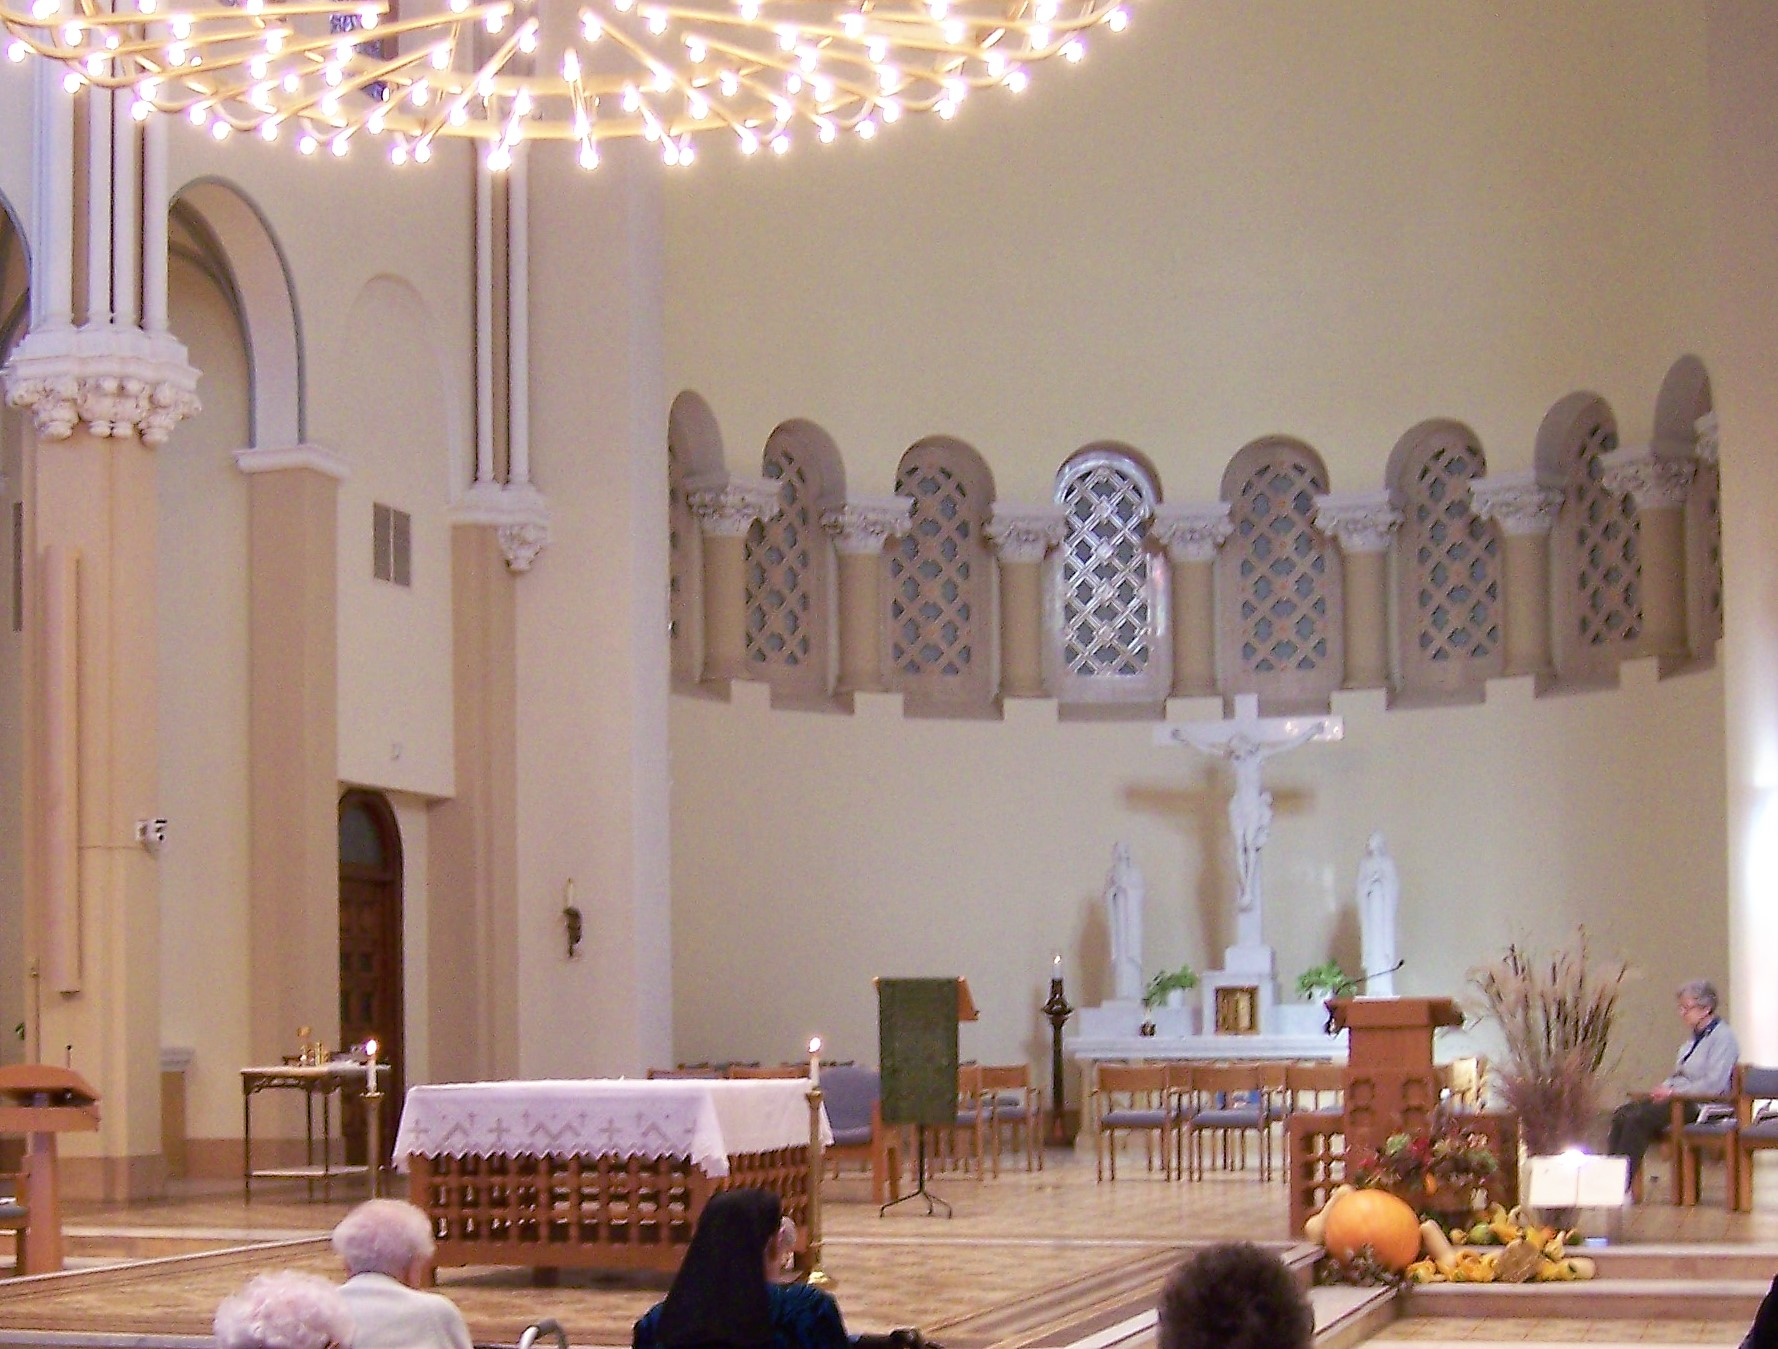 Our Lady of Good Counsel, Mankato, Minnesota - chapel